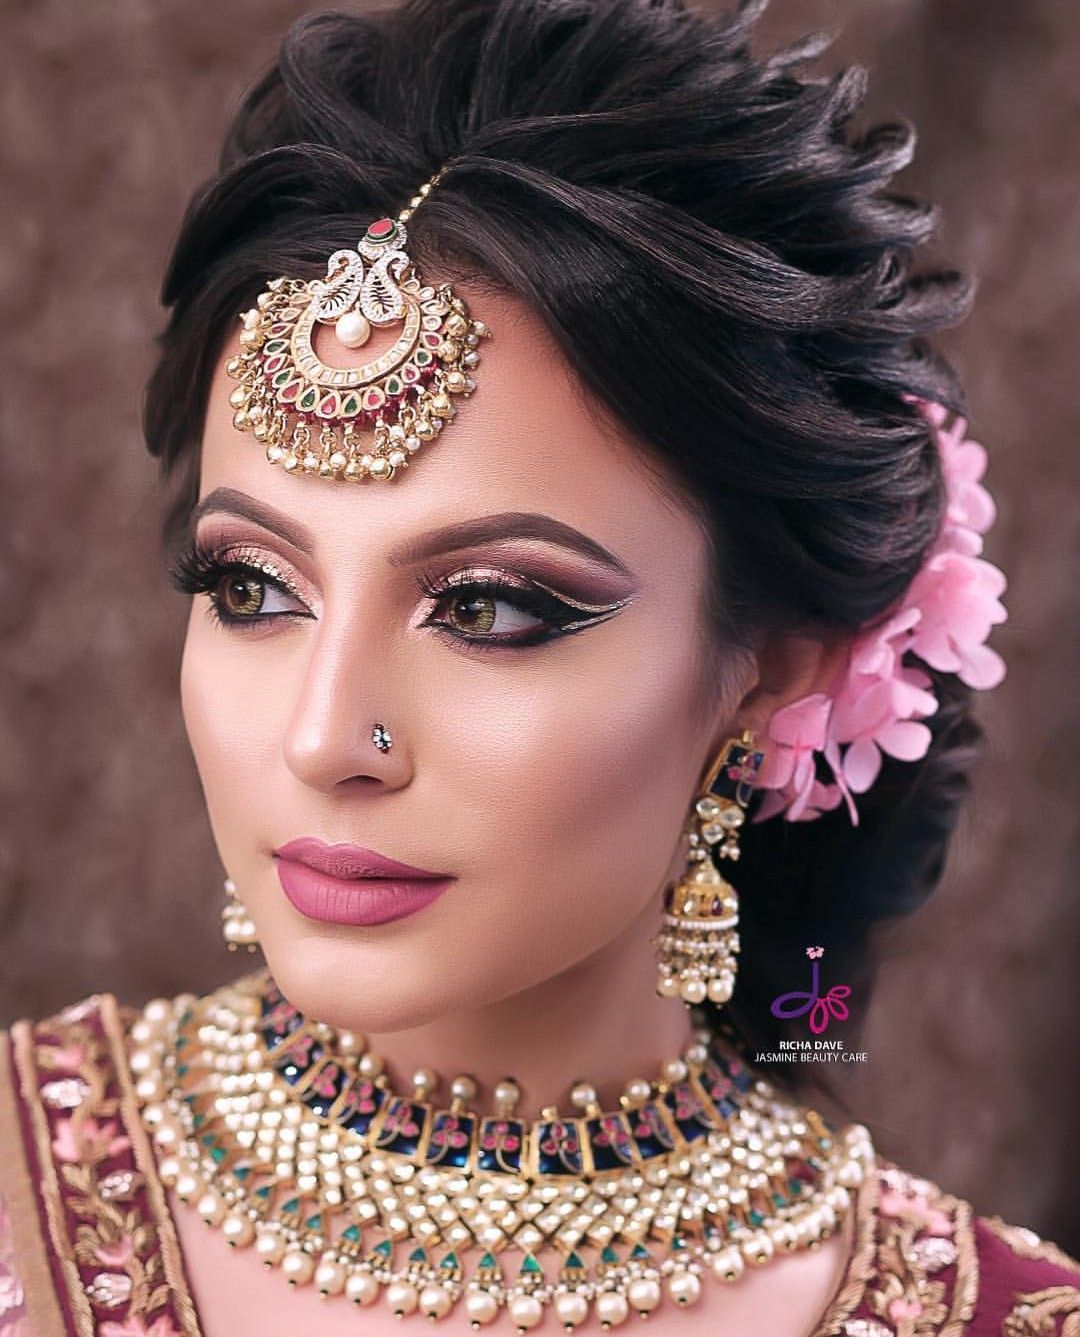 Shikachand In 2019 Bridal Hairstyle Indian Wedding In 2020 Bridal Hairstyle Indian Wedding Bridal Hair Buns Indian Bride Makeup